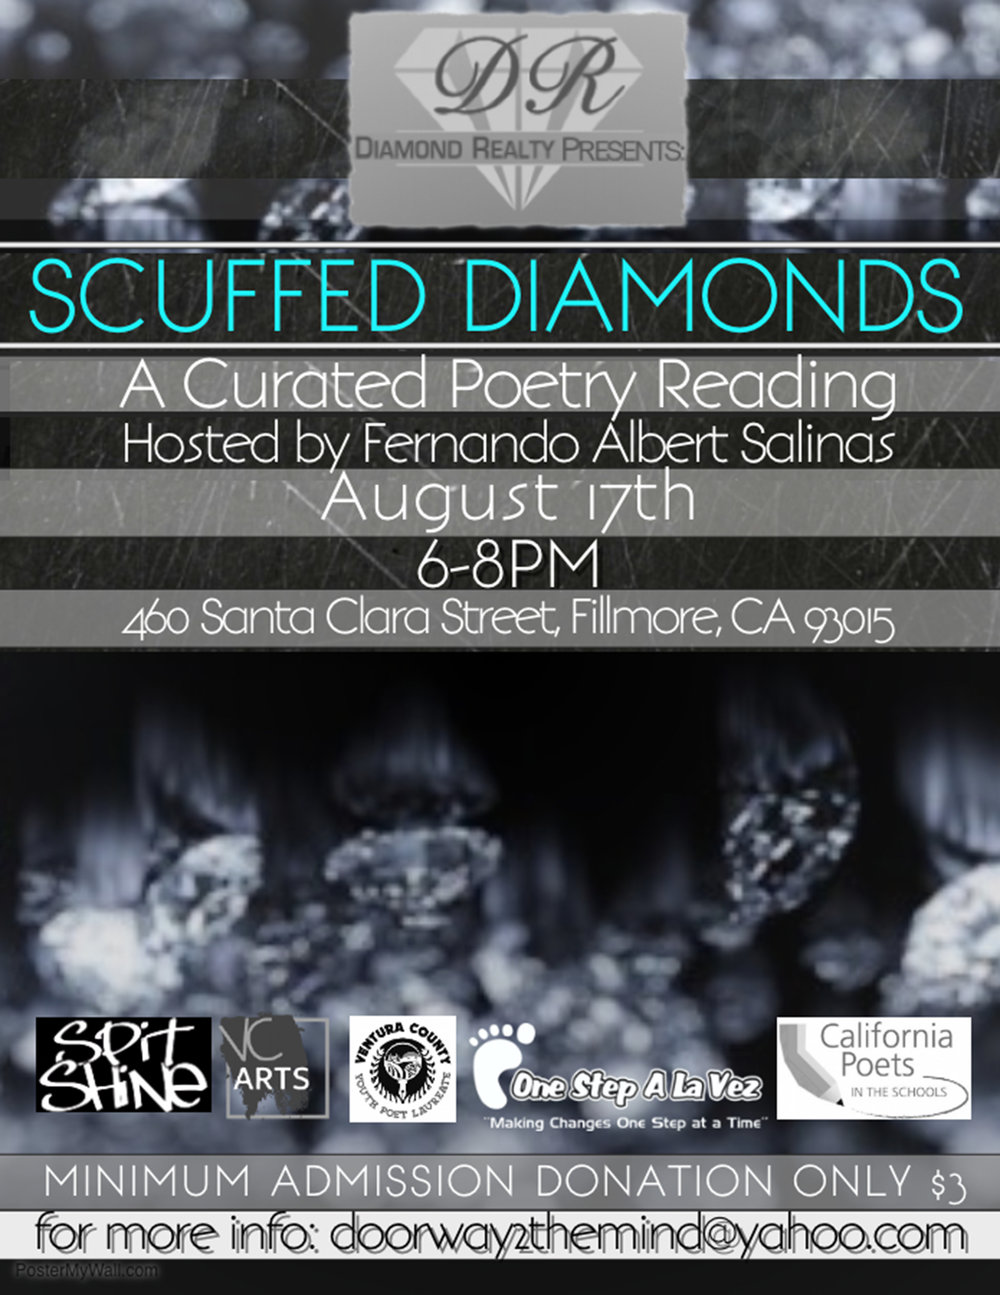 Scuffed-Diamonds-Poetry-Reading.jpg